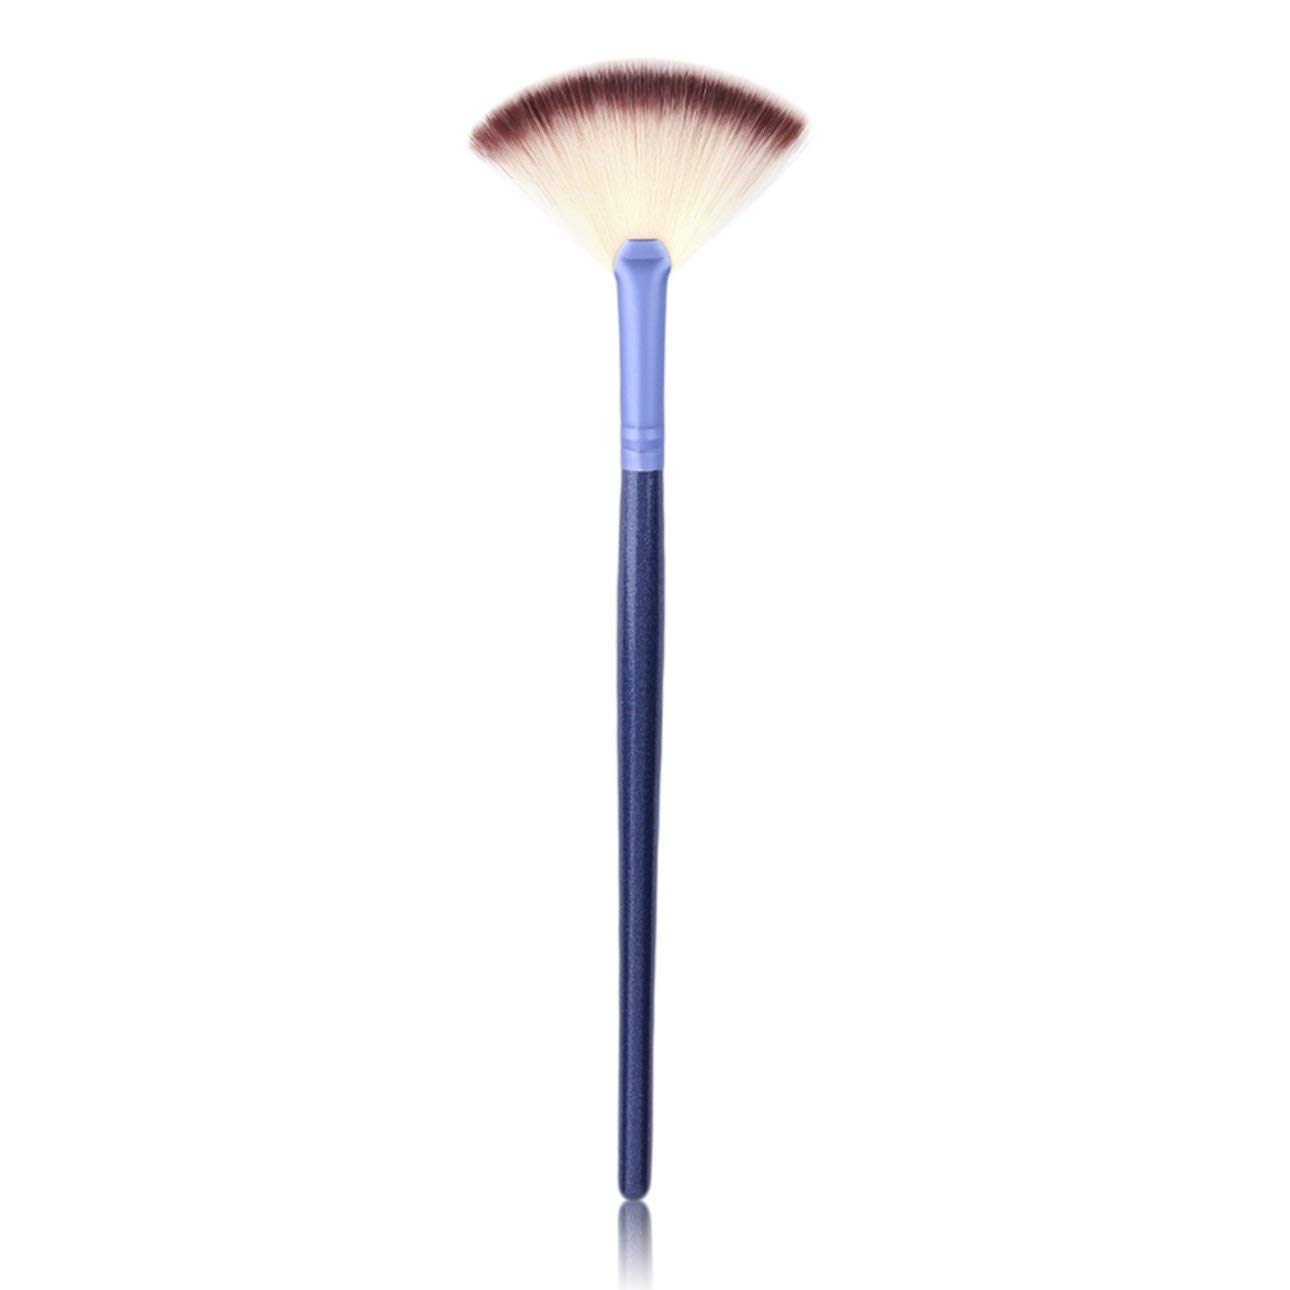 Liobaba Fashion Comfortable Fan Shaped Single Makeup Brush Facial Foundation Beauty Skin Care Tools Cosmetic Brushes